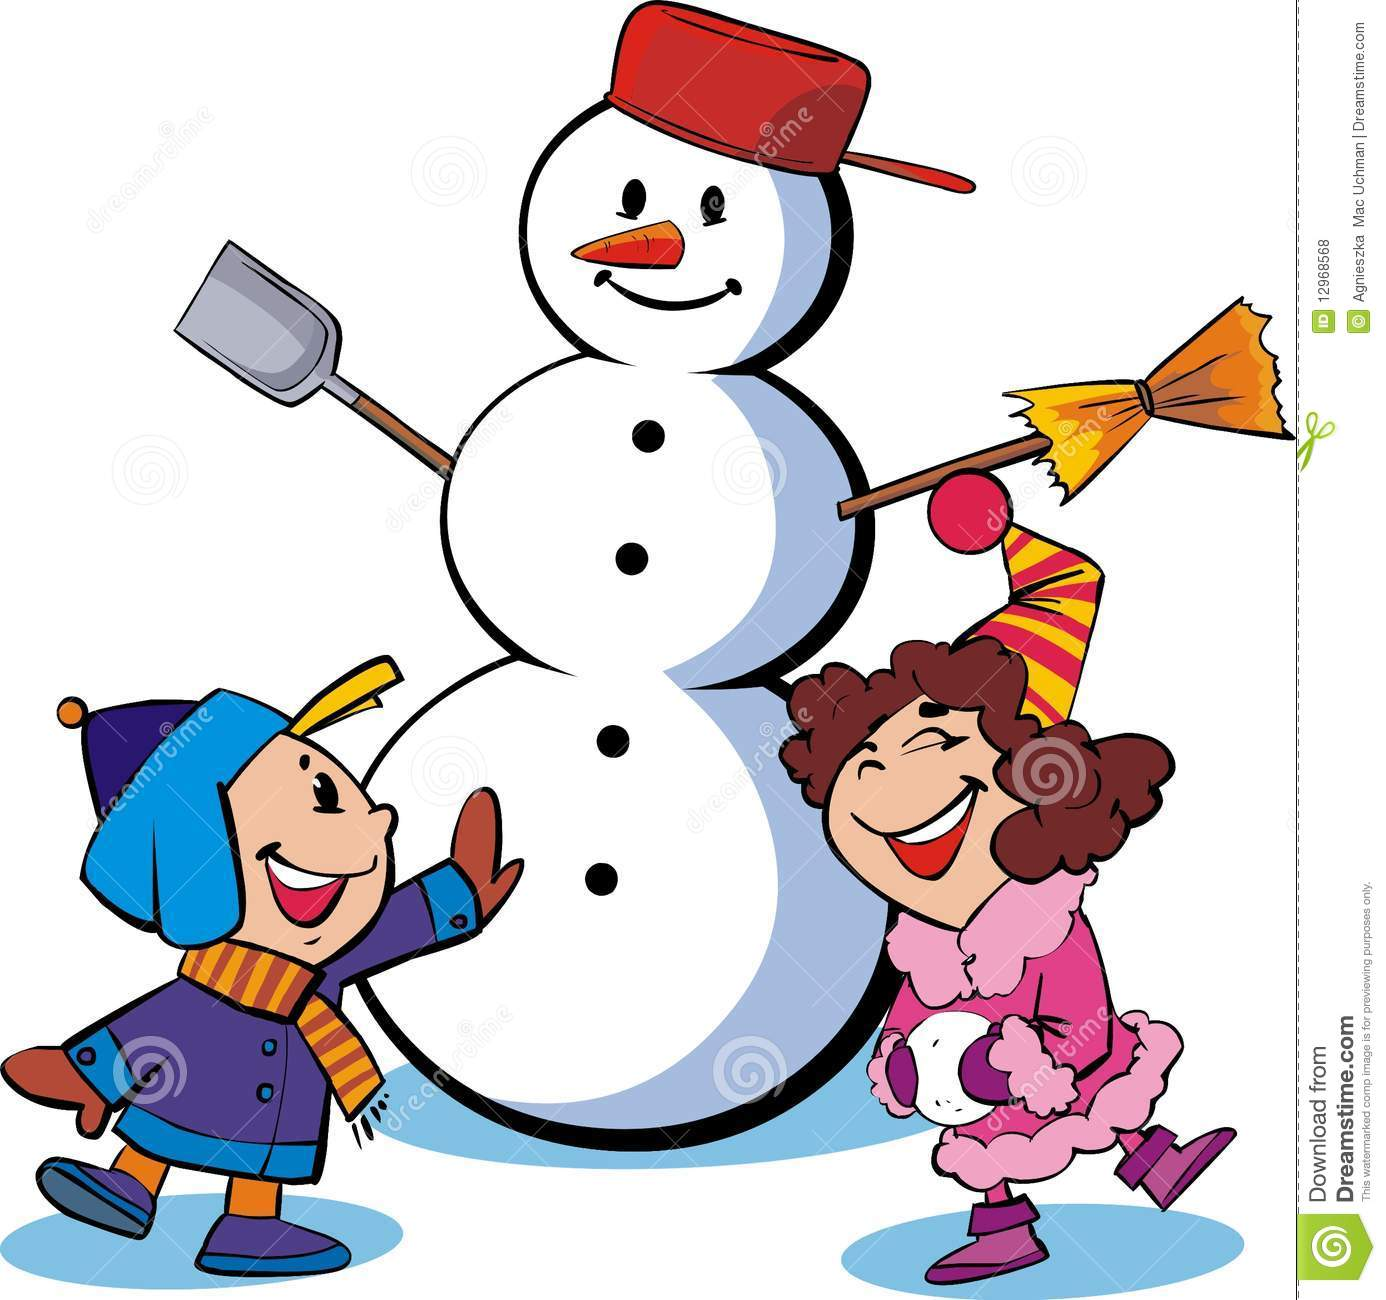 1386x1300 Collection Of Kids Making A Snowman Clipart High Quality